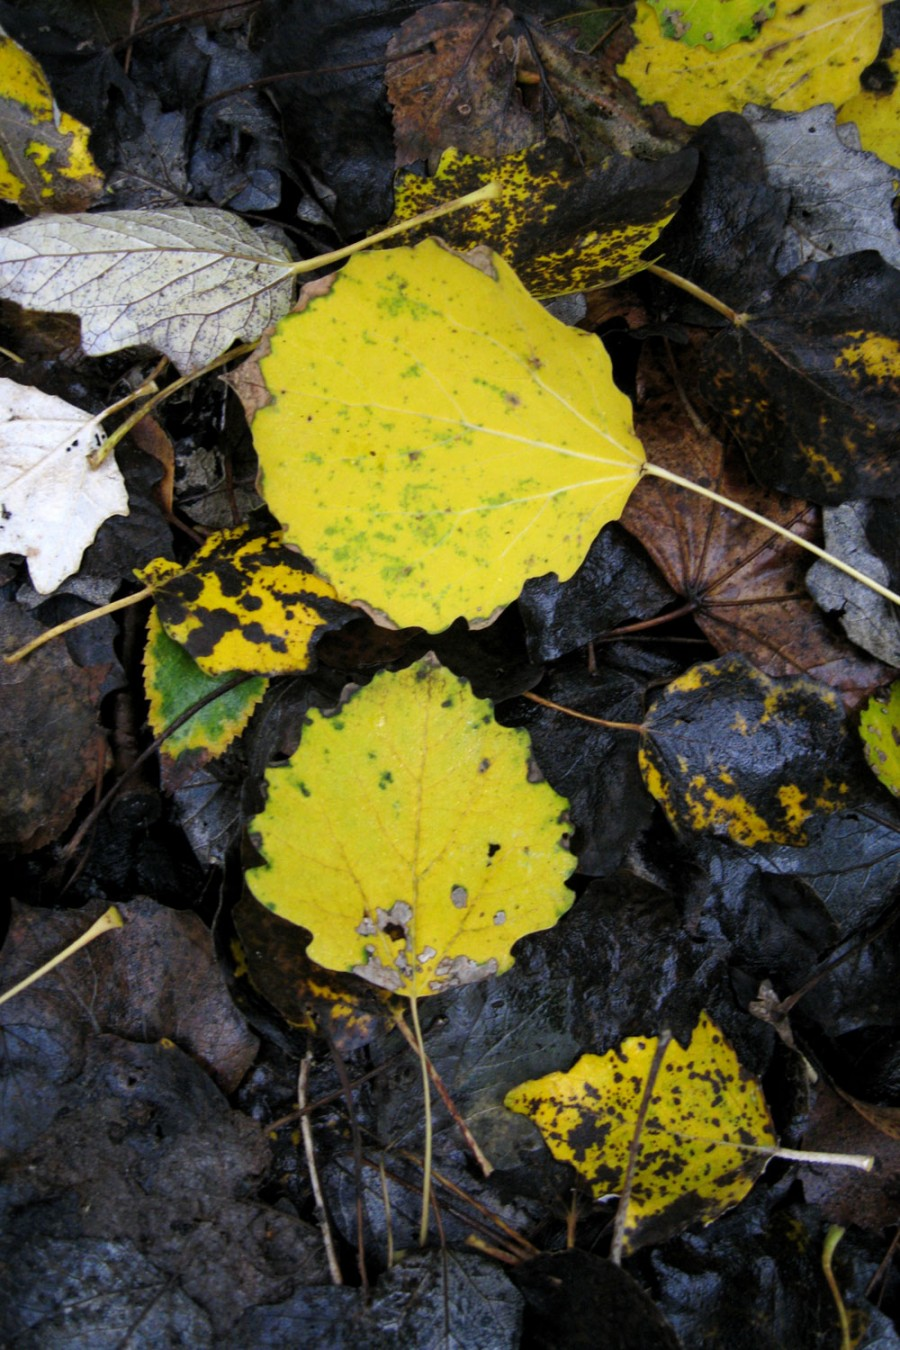 Fallen leaves of a lime tree.